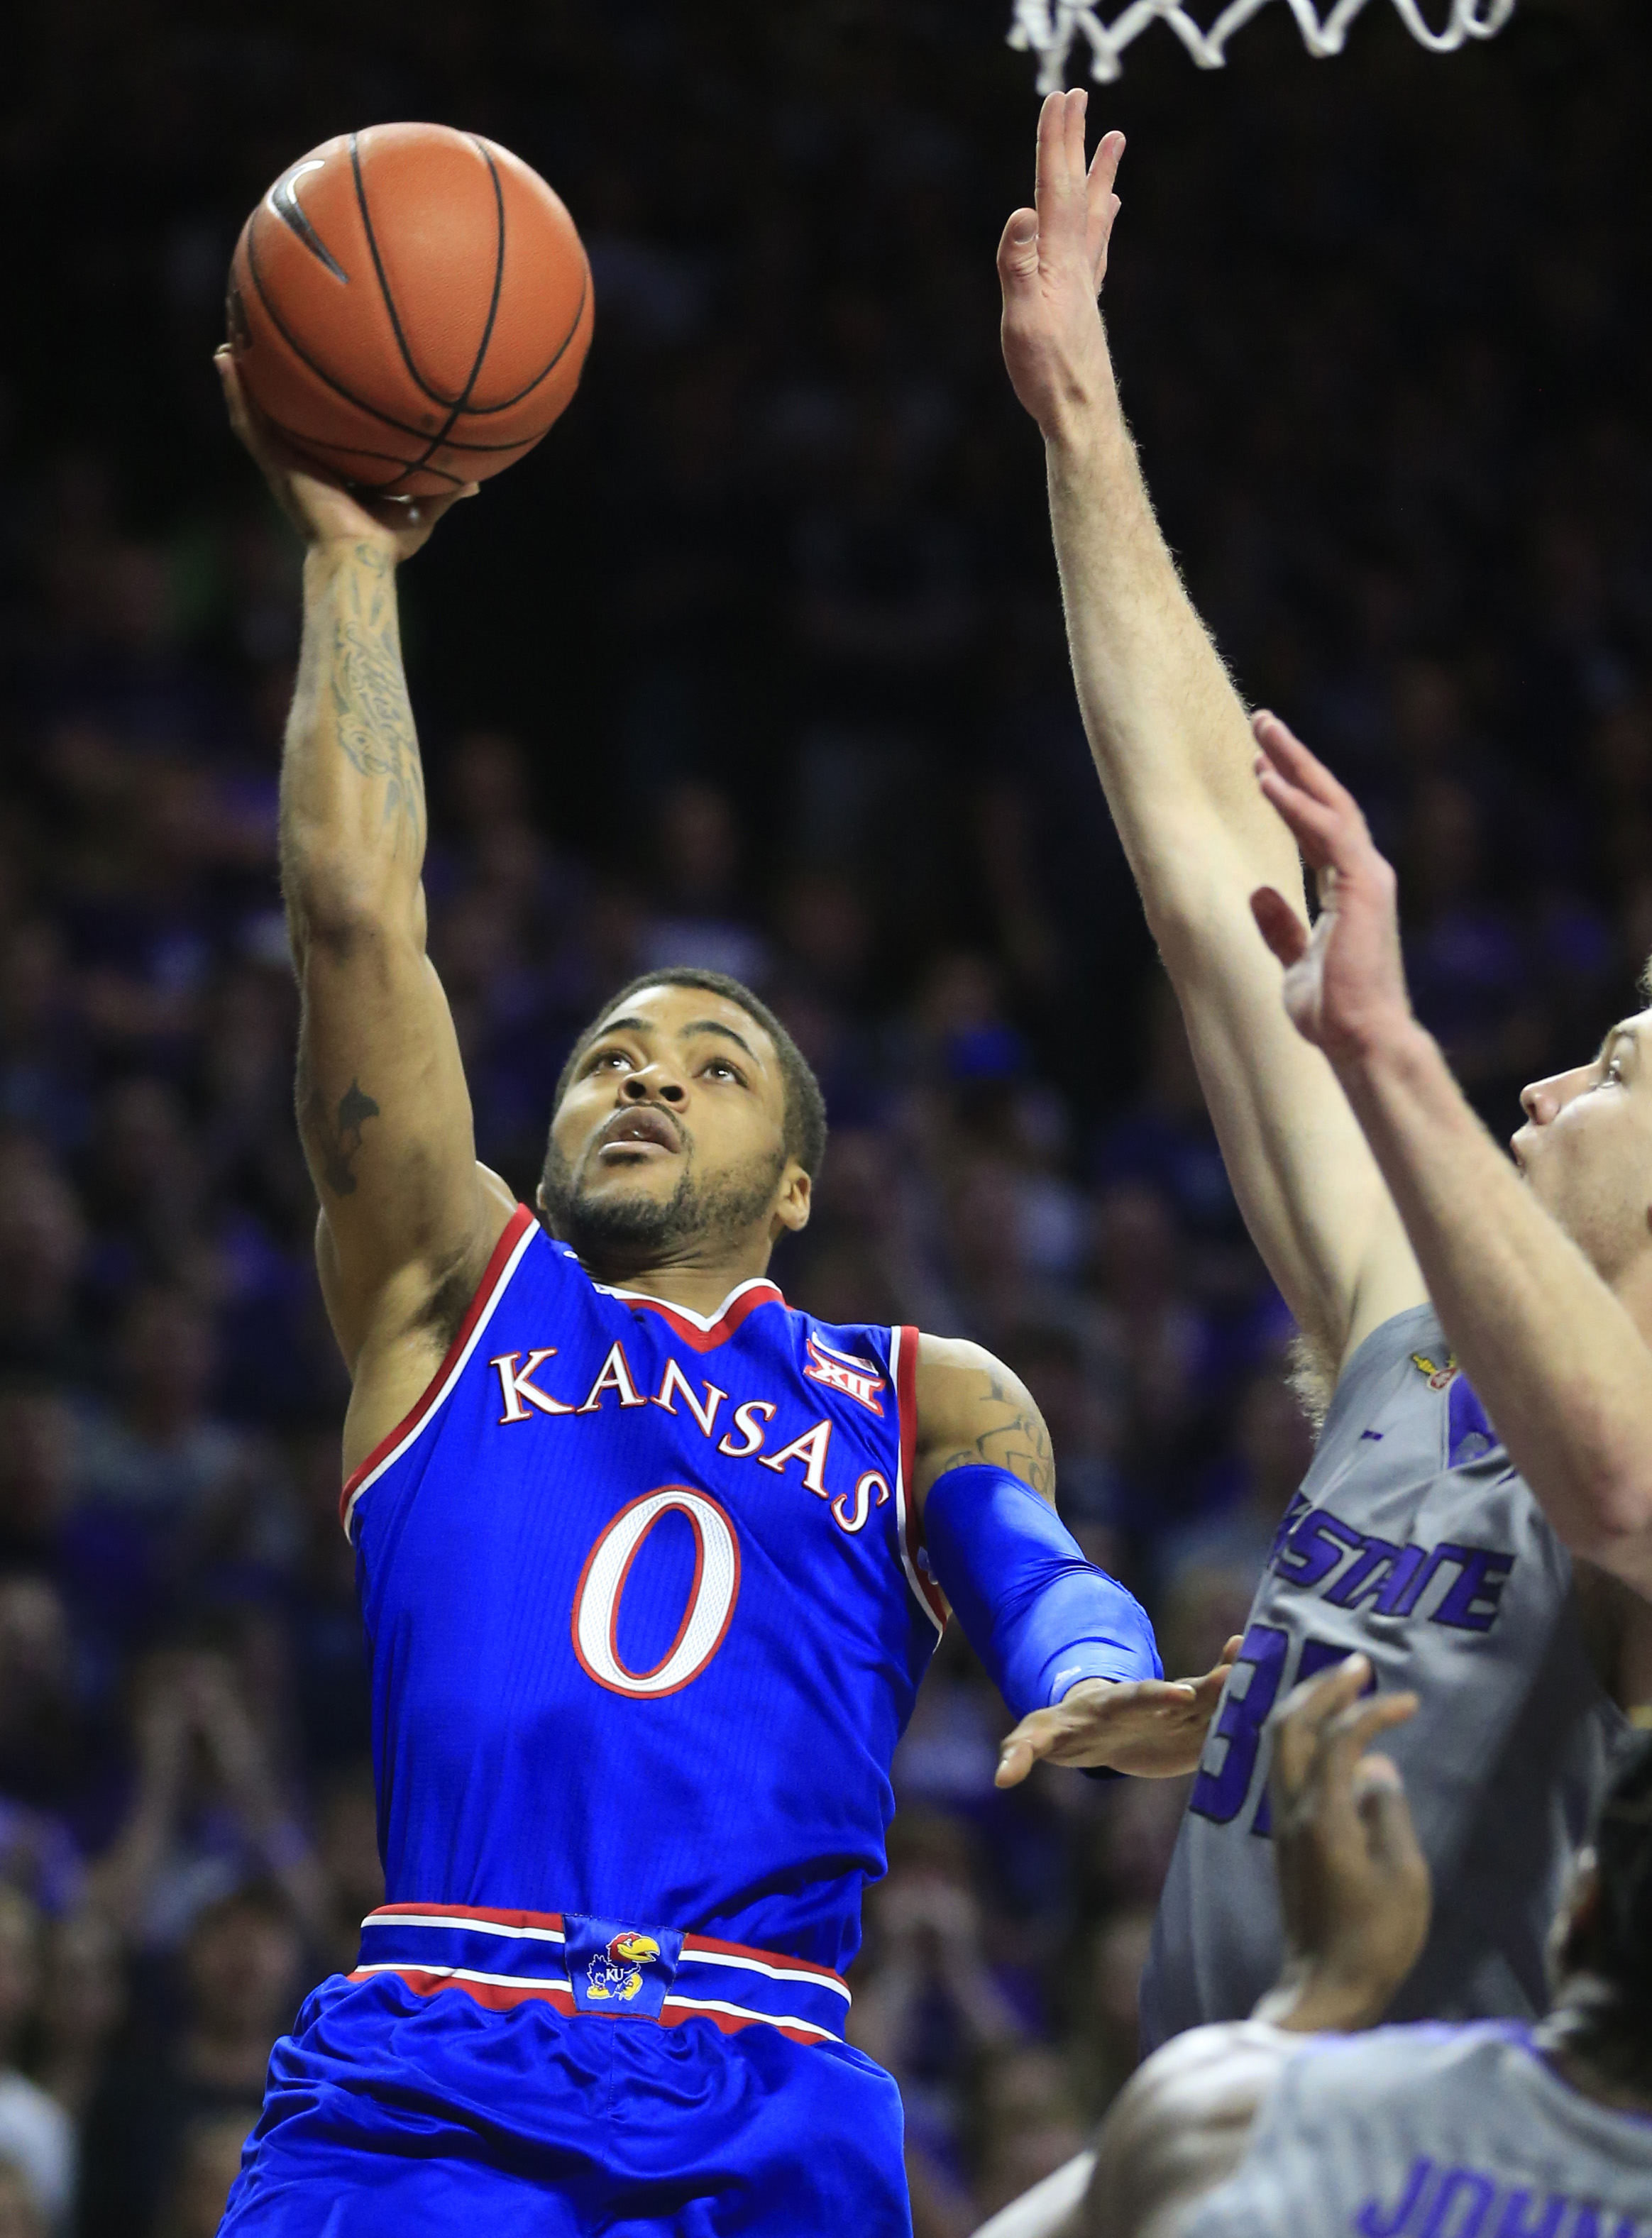 Kansas guard Frank Mason III (0) shoots as Kansas State forward Dean Wade (32) defends during the first half of an NCAA college basketball game in Manhattan, Kan., Saturday, Feb. 20, 2016. (AP Photo/Orlin Wagner)